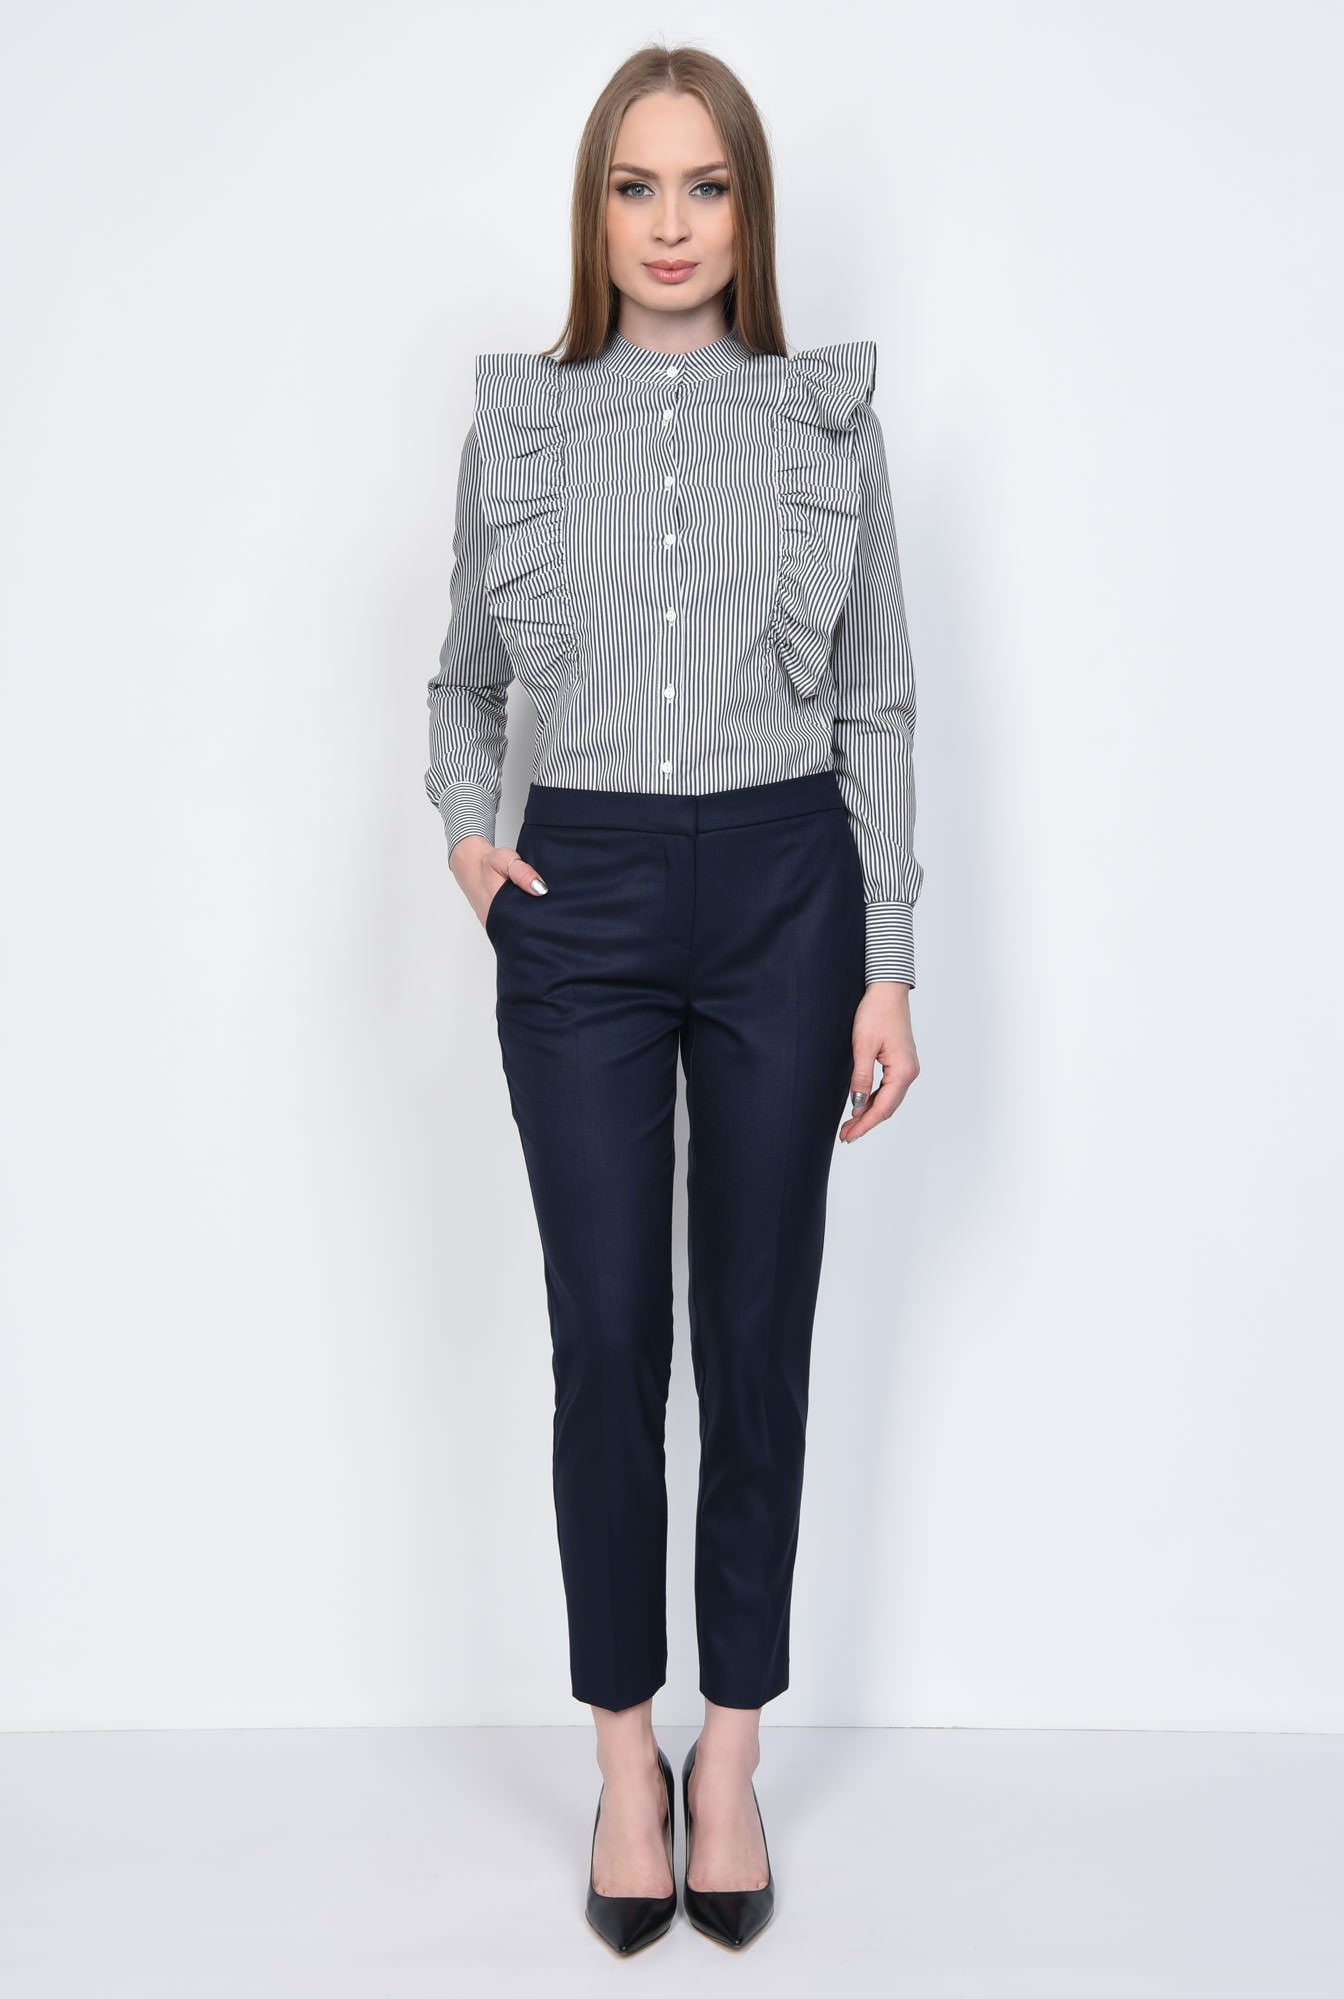 3 - PANTALON OFFICE CONIC PT 143-BLEUMARIN